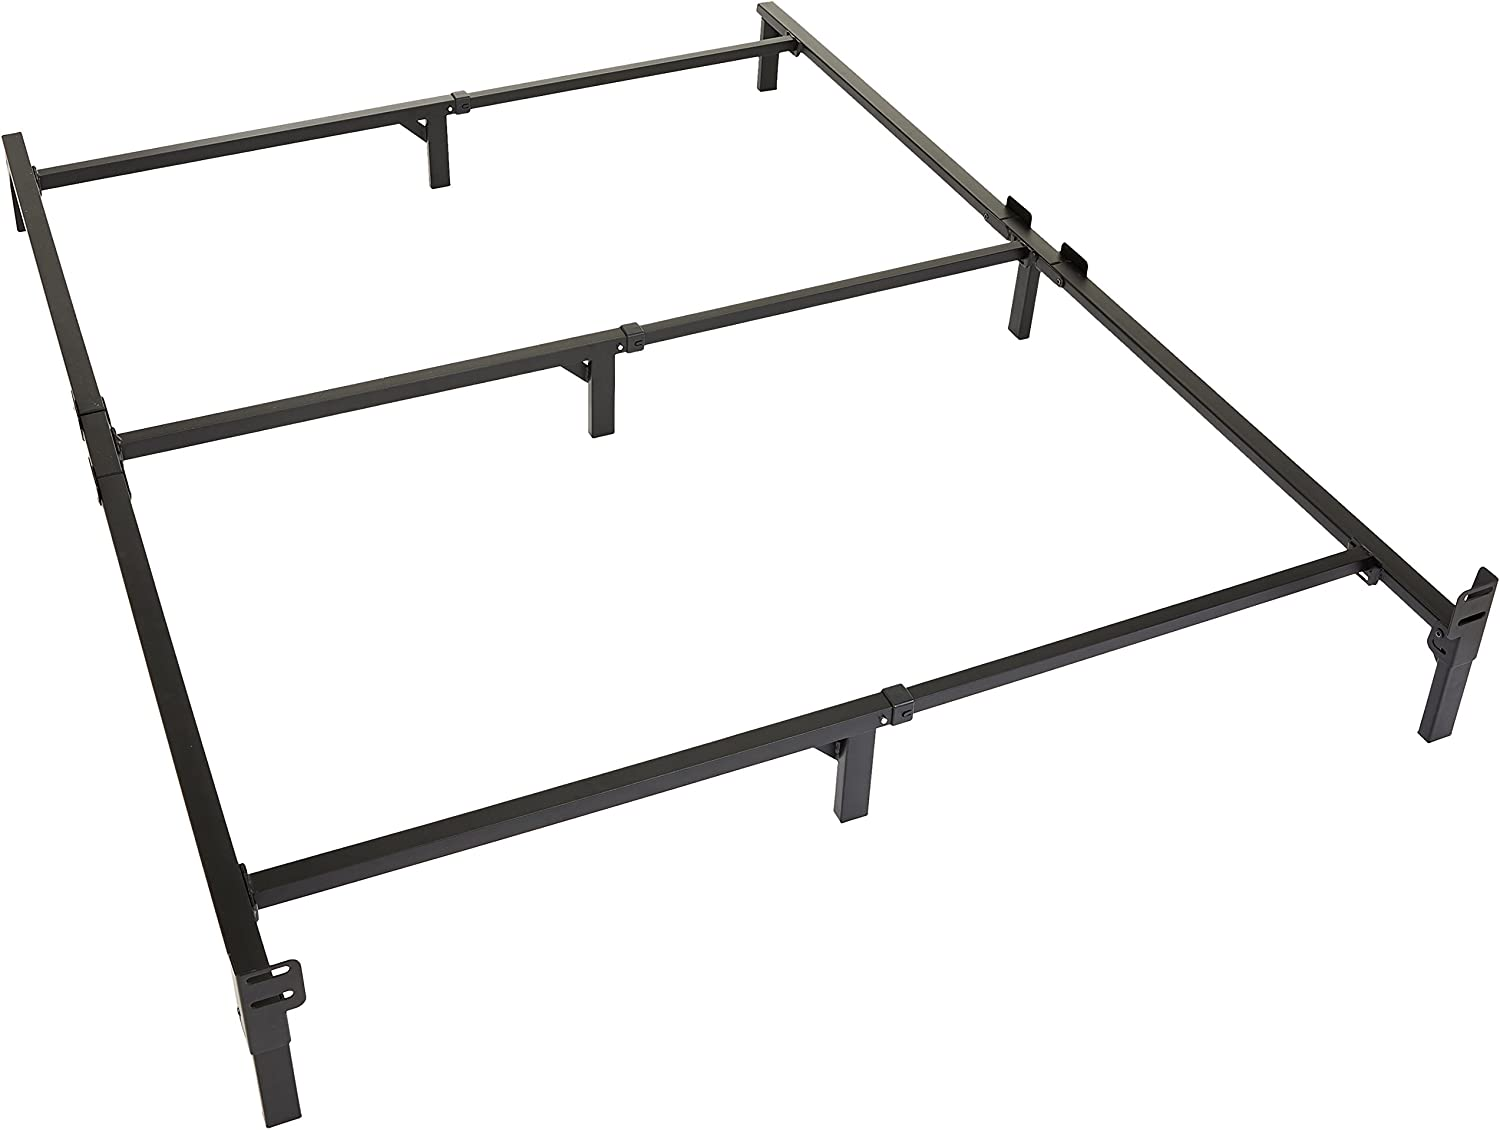 Amazon Basics 9-Leg Support Metal Bed Frame – Strong Support for Box Spring and Mattress Set – Queen Size Bed